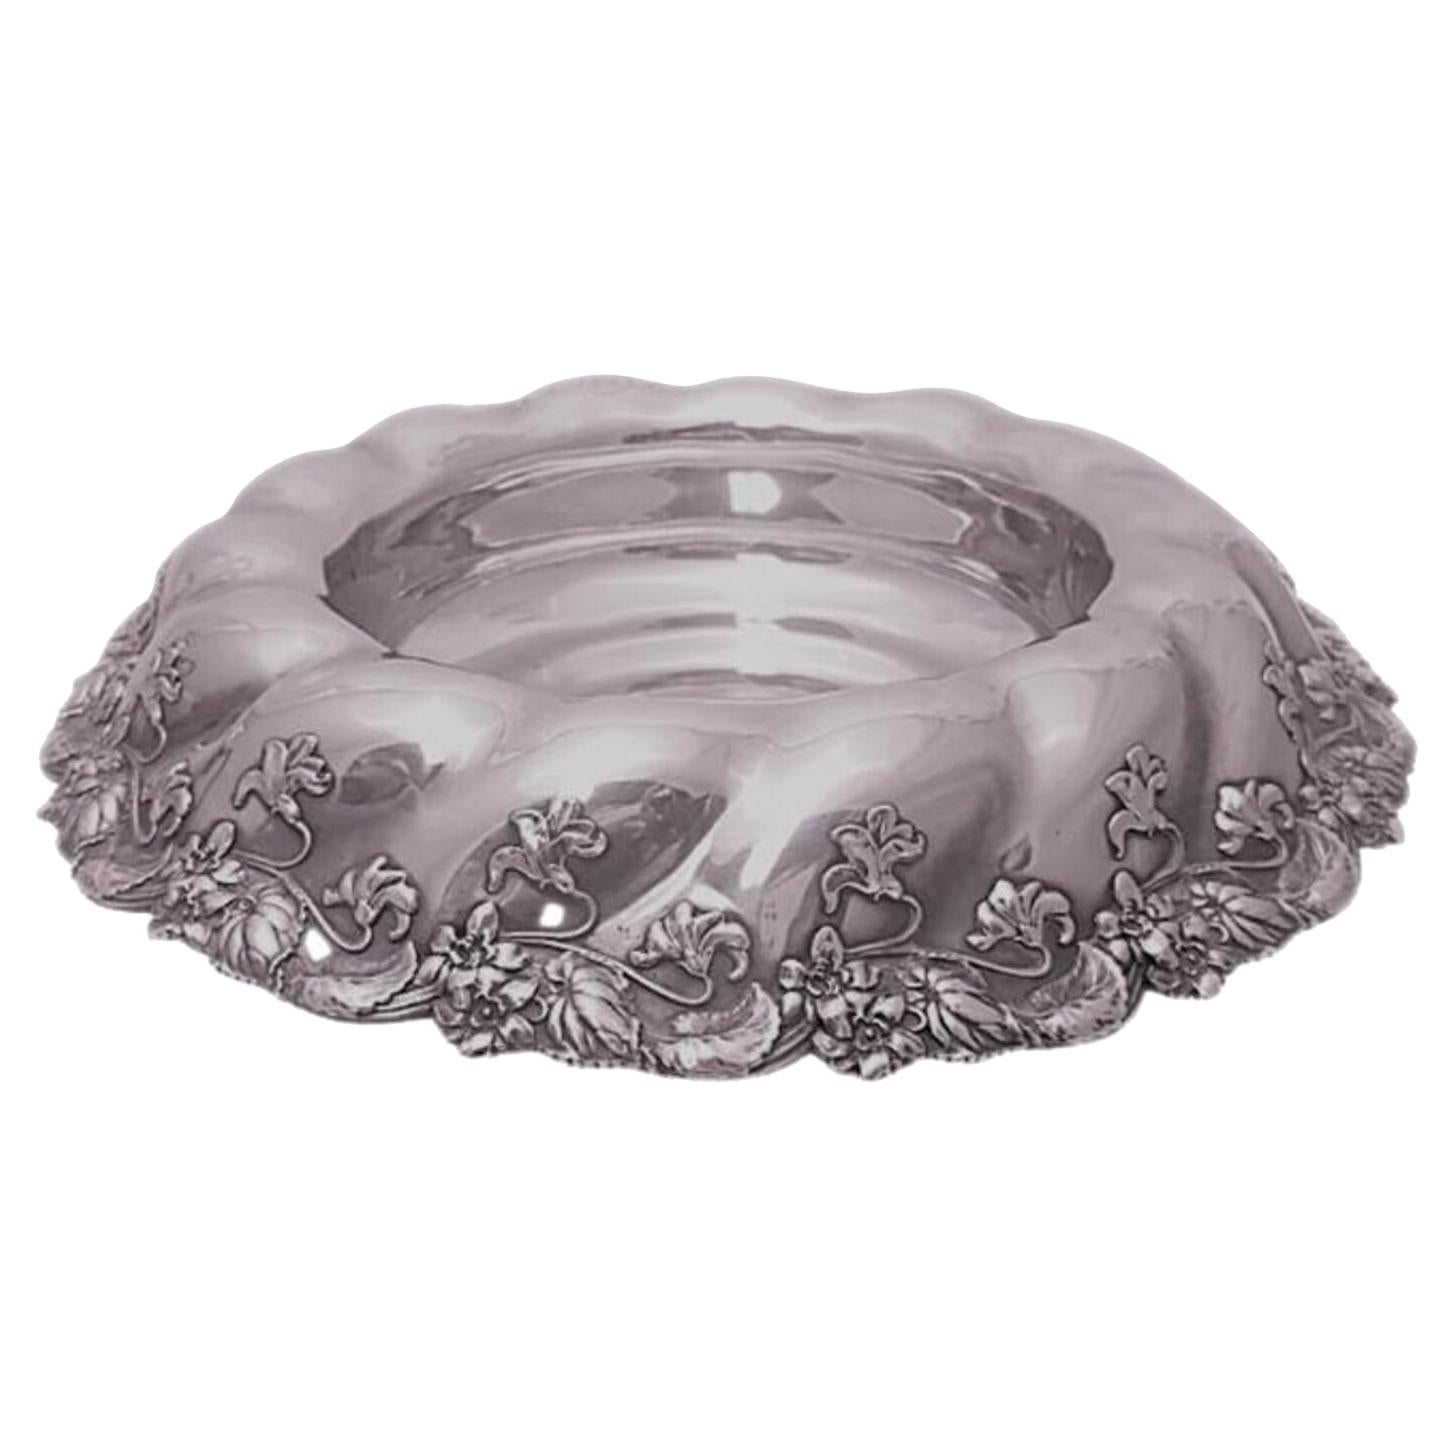 Whiting Sterling Silver Centerpiece/Fruit Bowl Circa 1905 in Art Nouveau Style